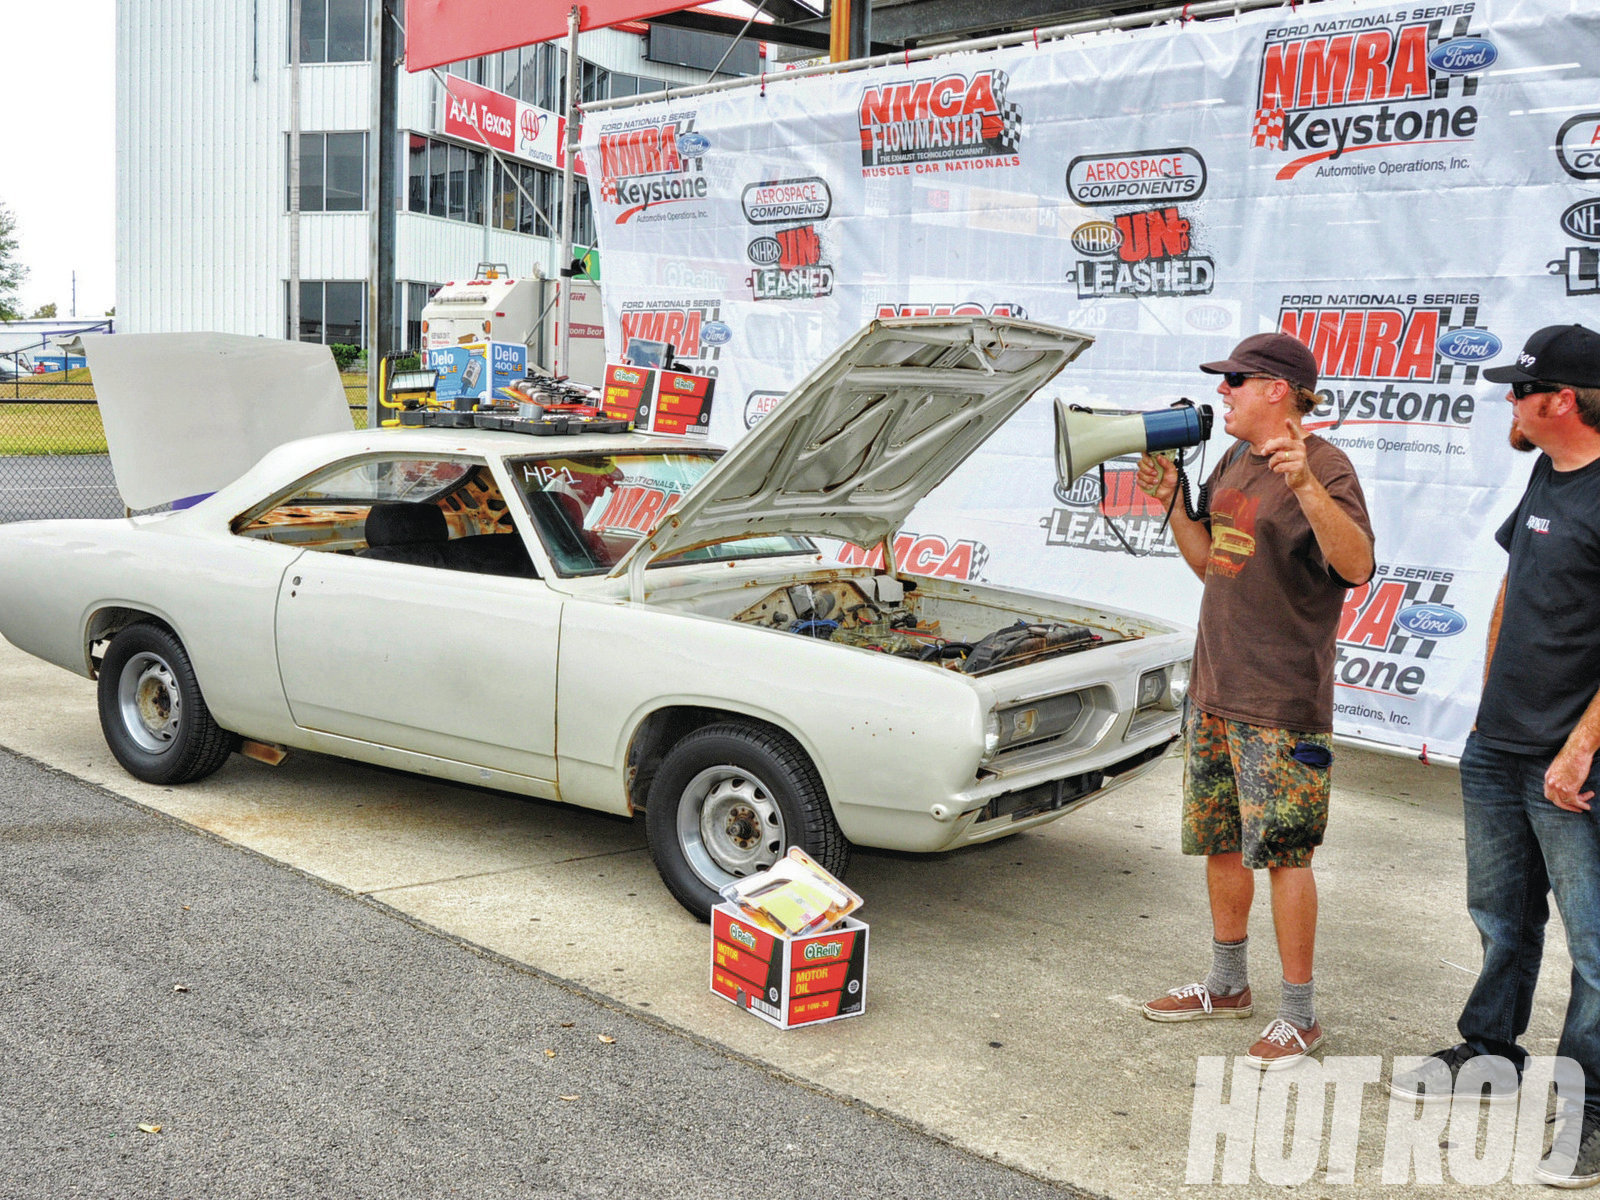 At last, the Cuda gets auctioned off and eventually ends back home at CTC Auto Ranch to be recycled into even more cash.